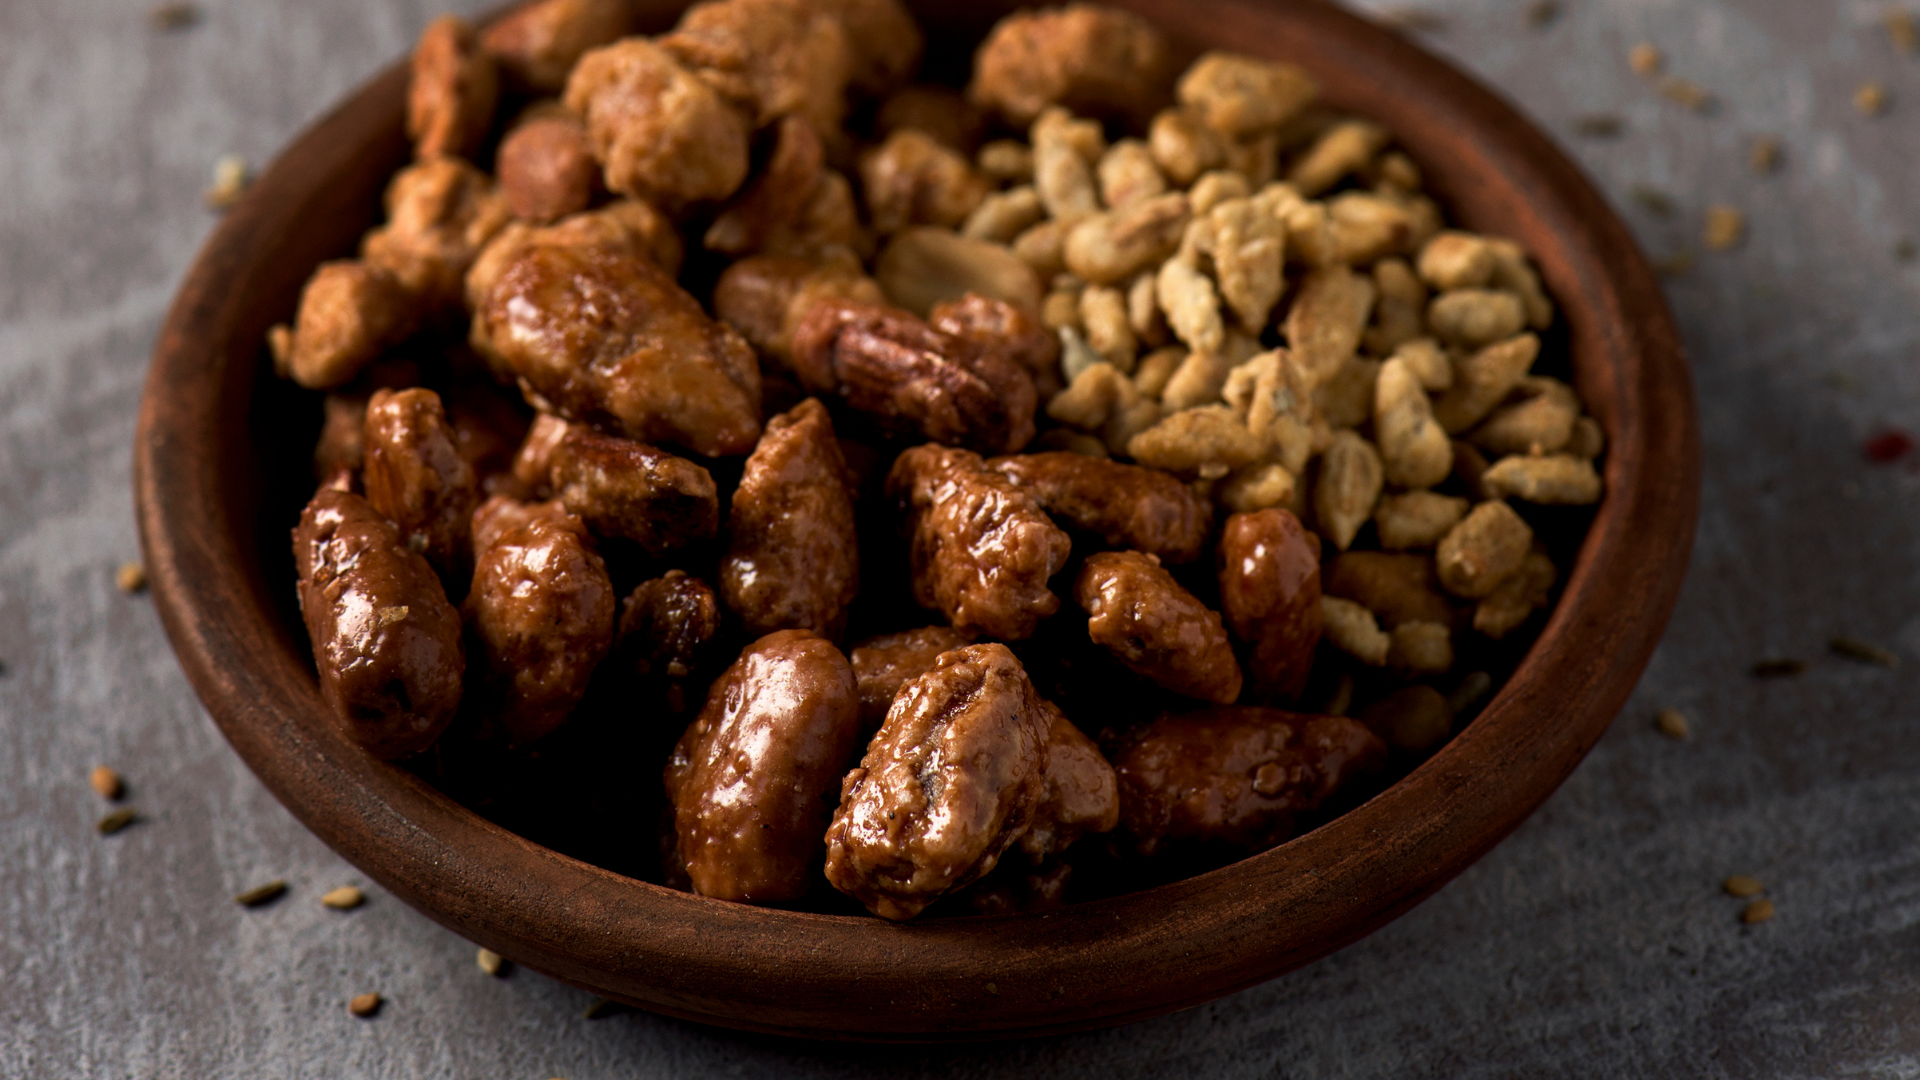 A bowl holding candied nuts.